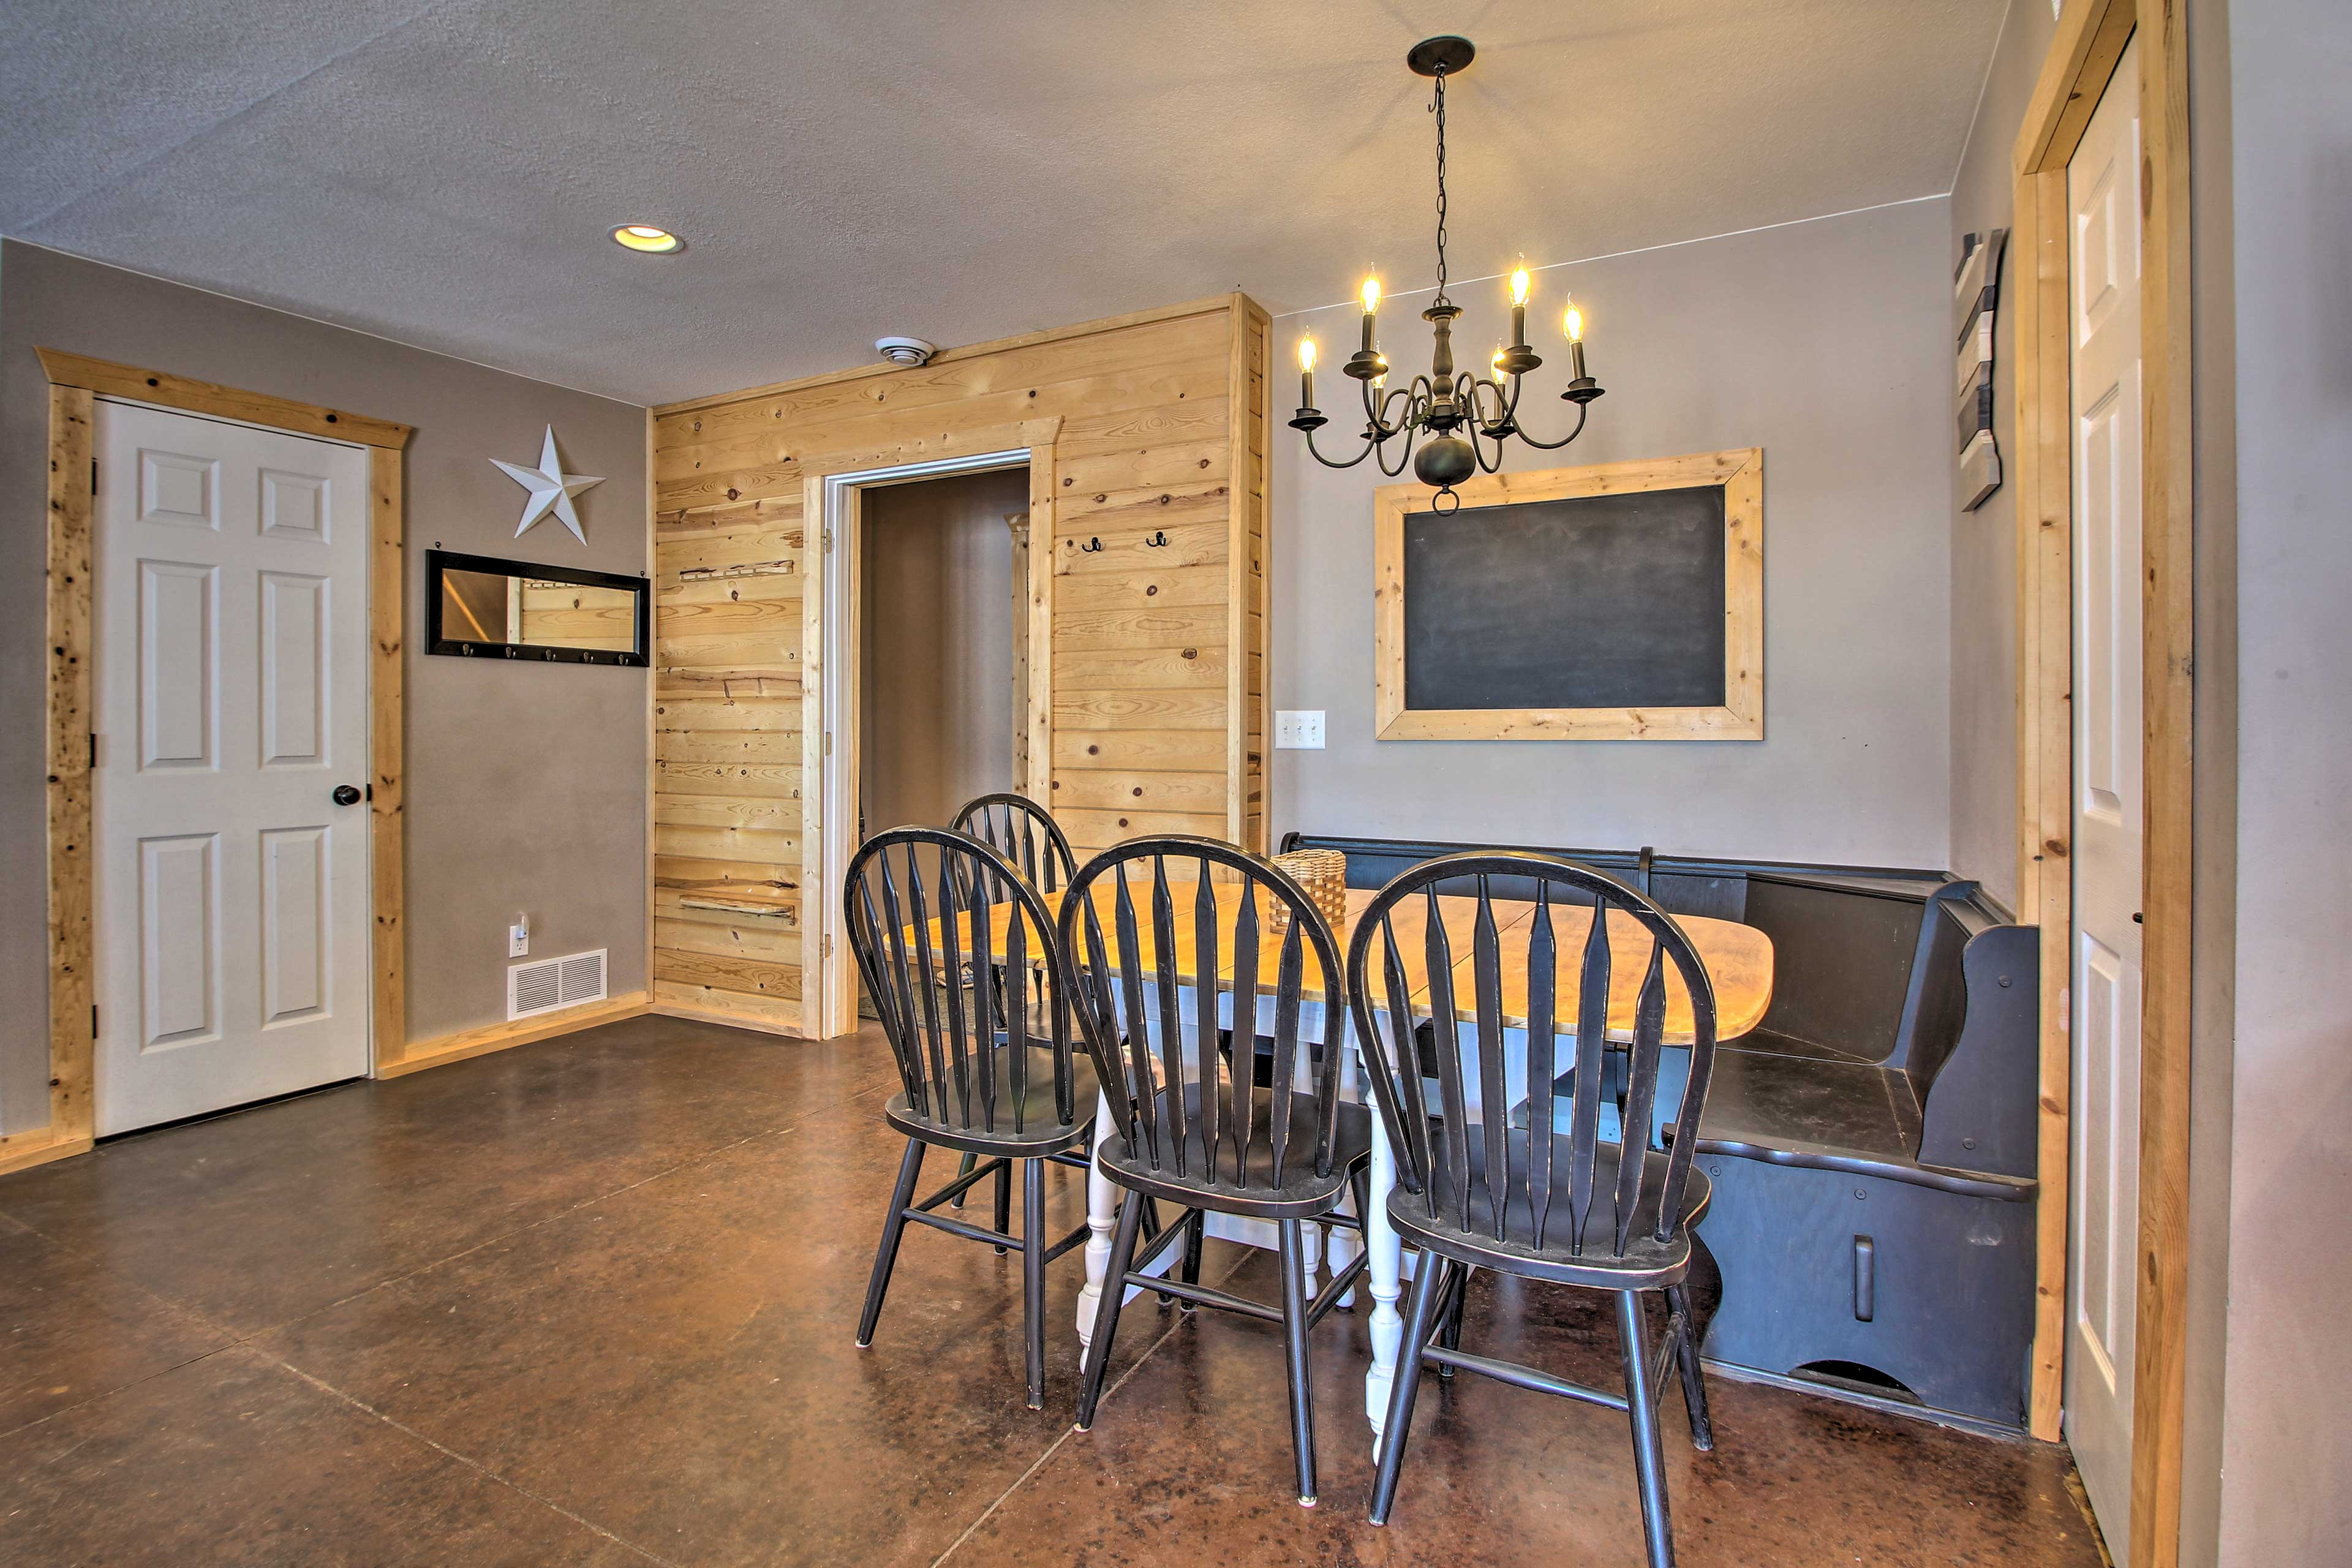 Gather the group for a family dinner in the booth-style table.